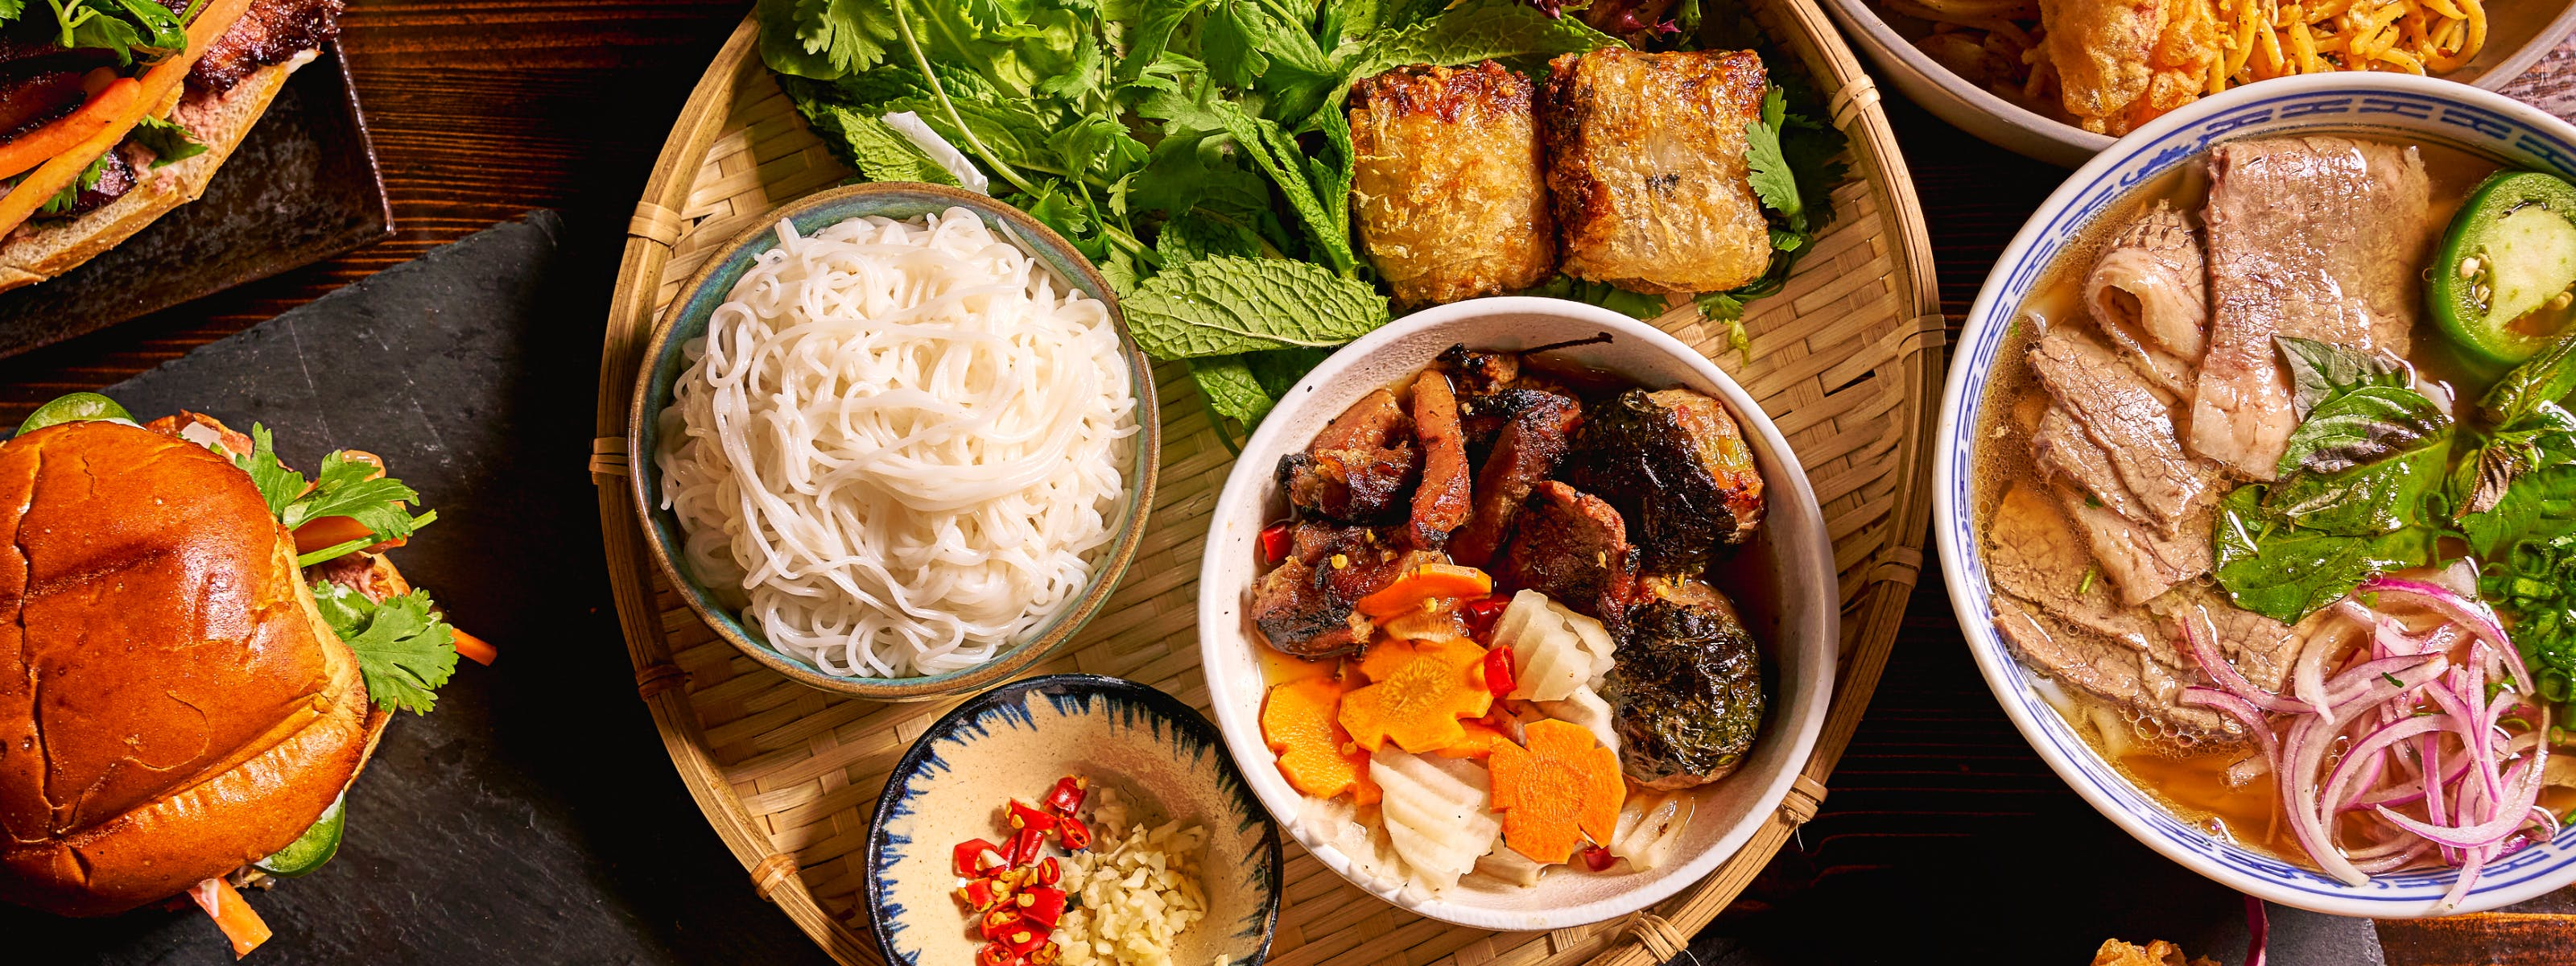 The Best Vietnamese Restaurants In NYC - New York - The Infatuation